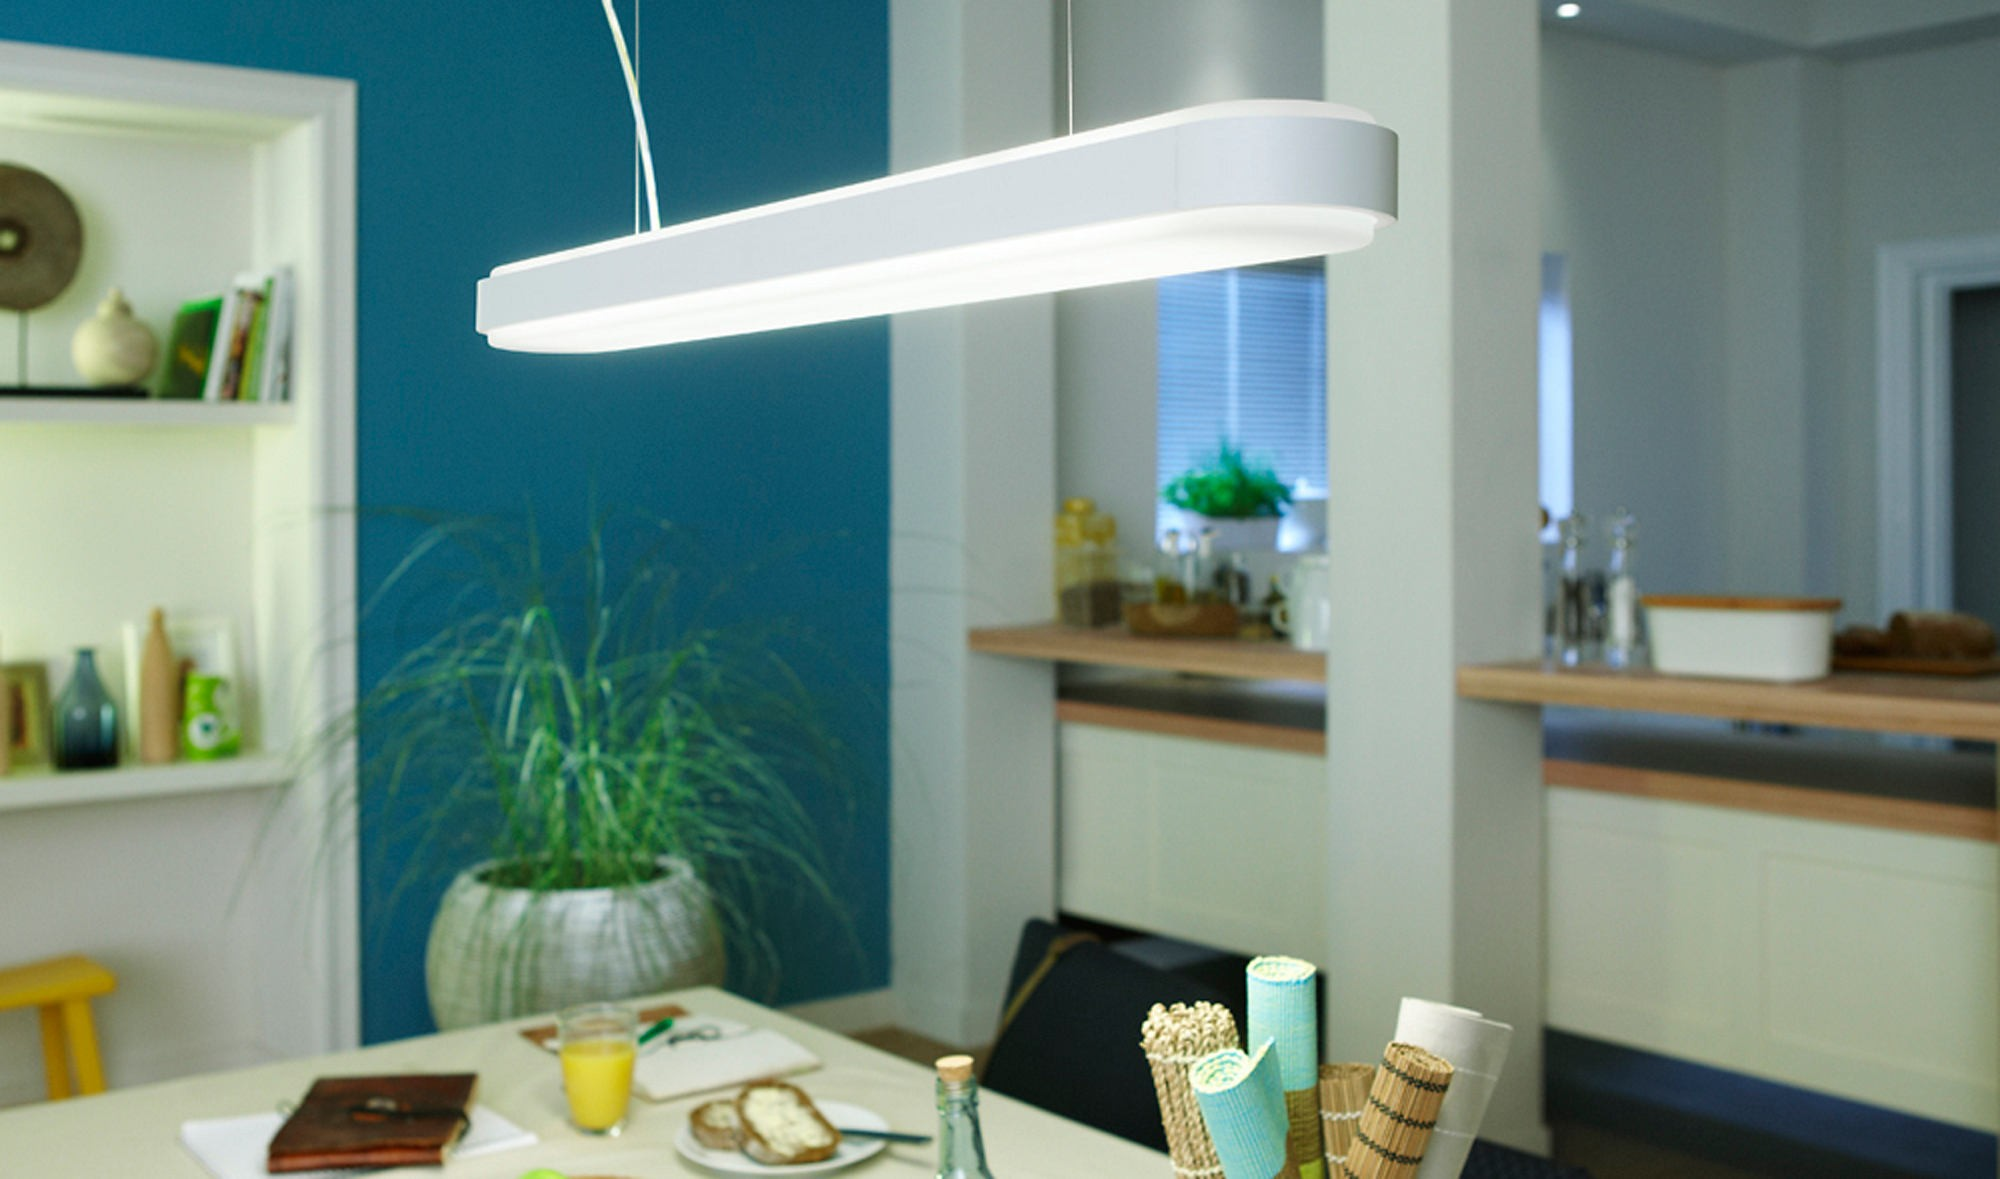 Led verlichting keuken philips for Ha ngelampe esstisch modern